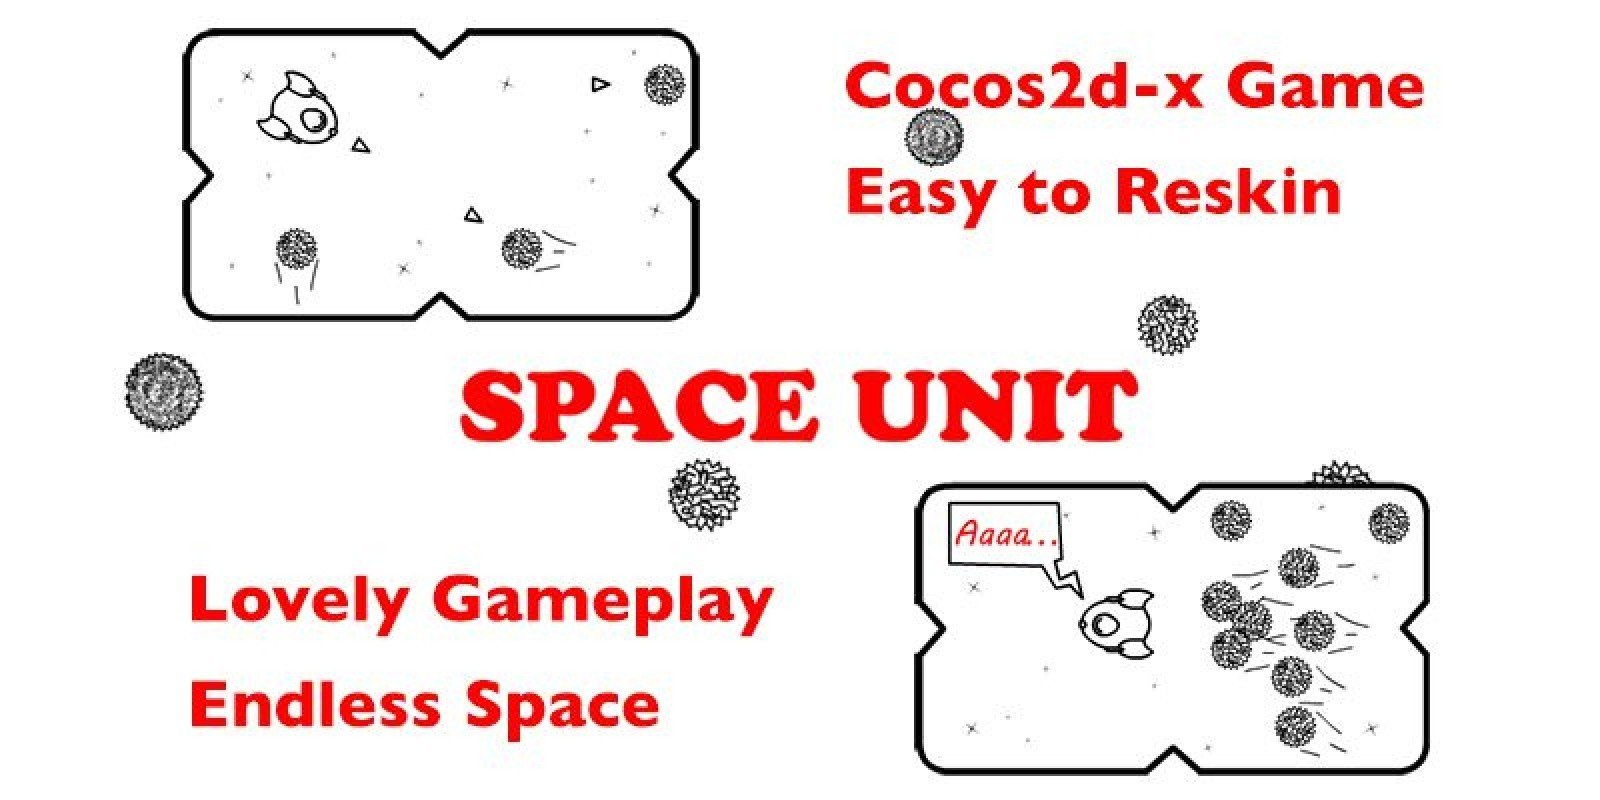 Space Unit - iOS Game Source Code